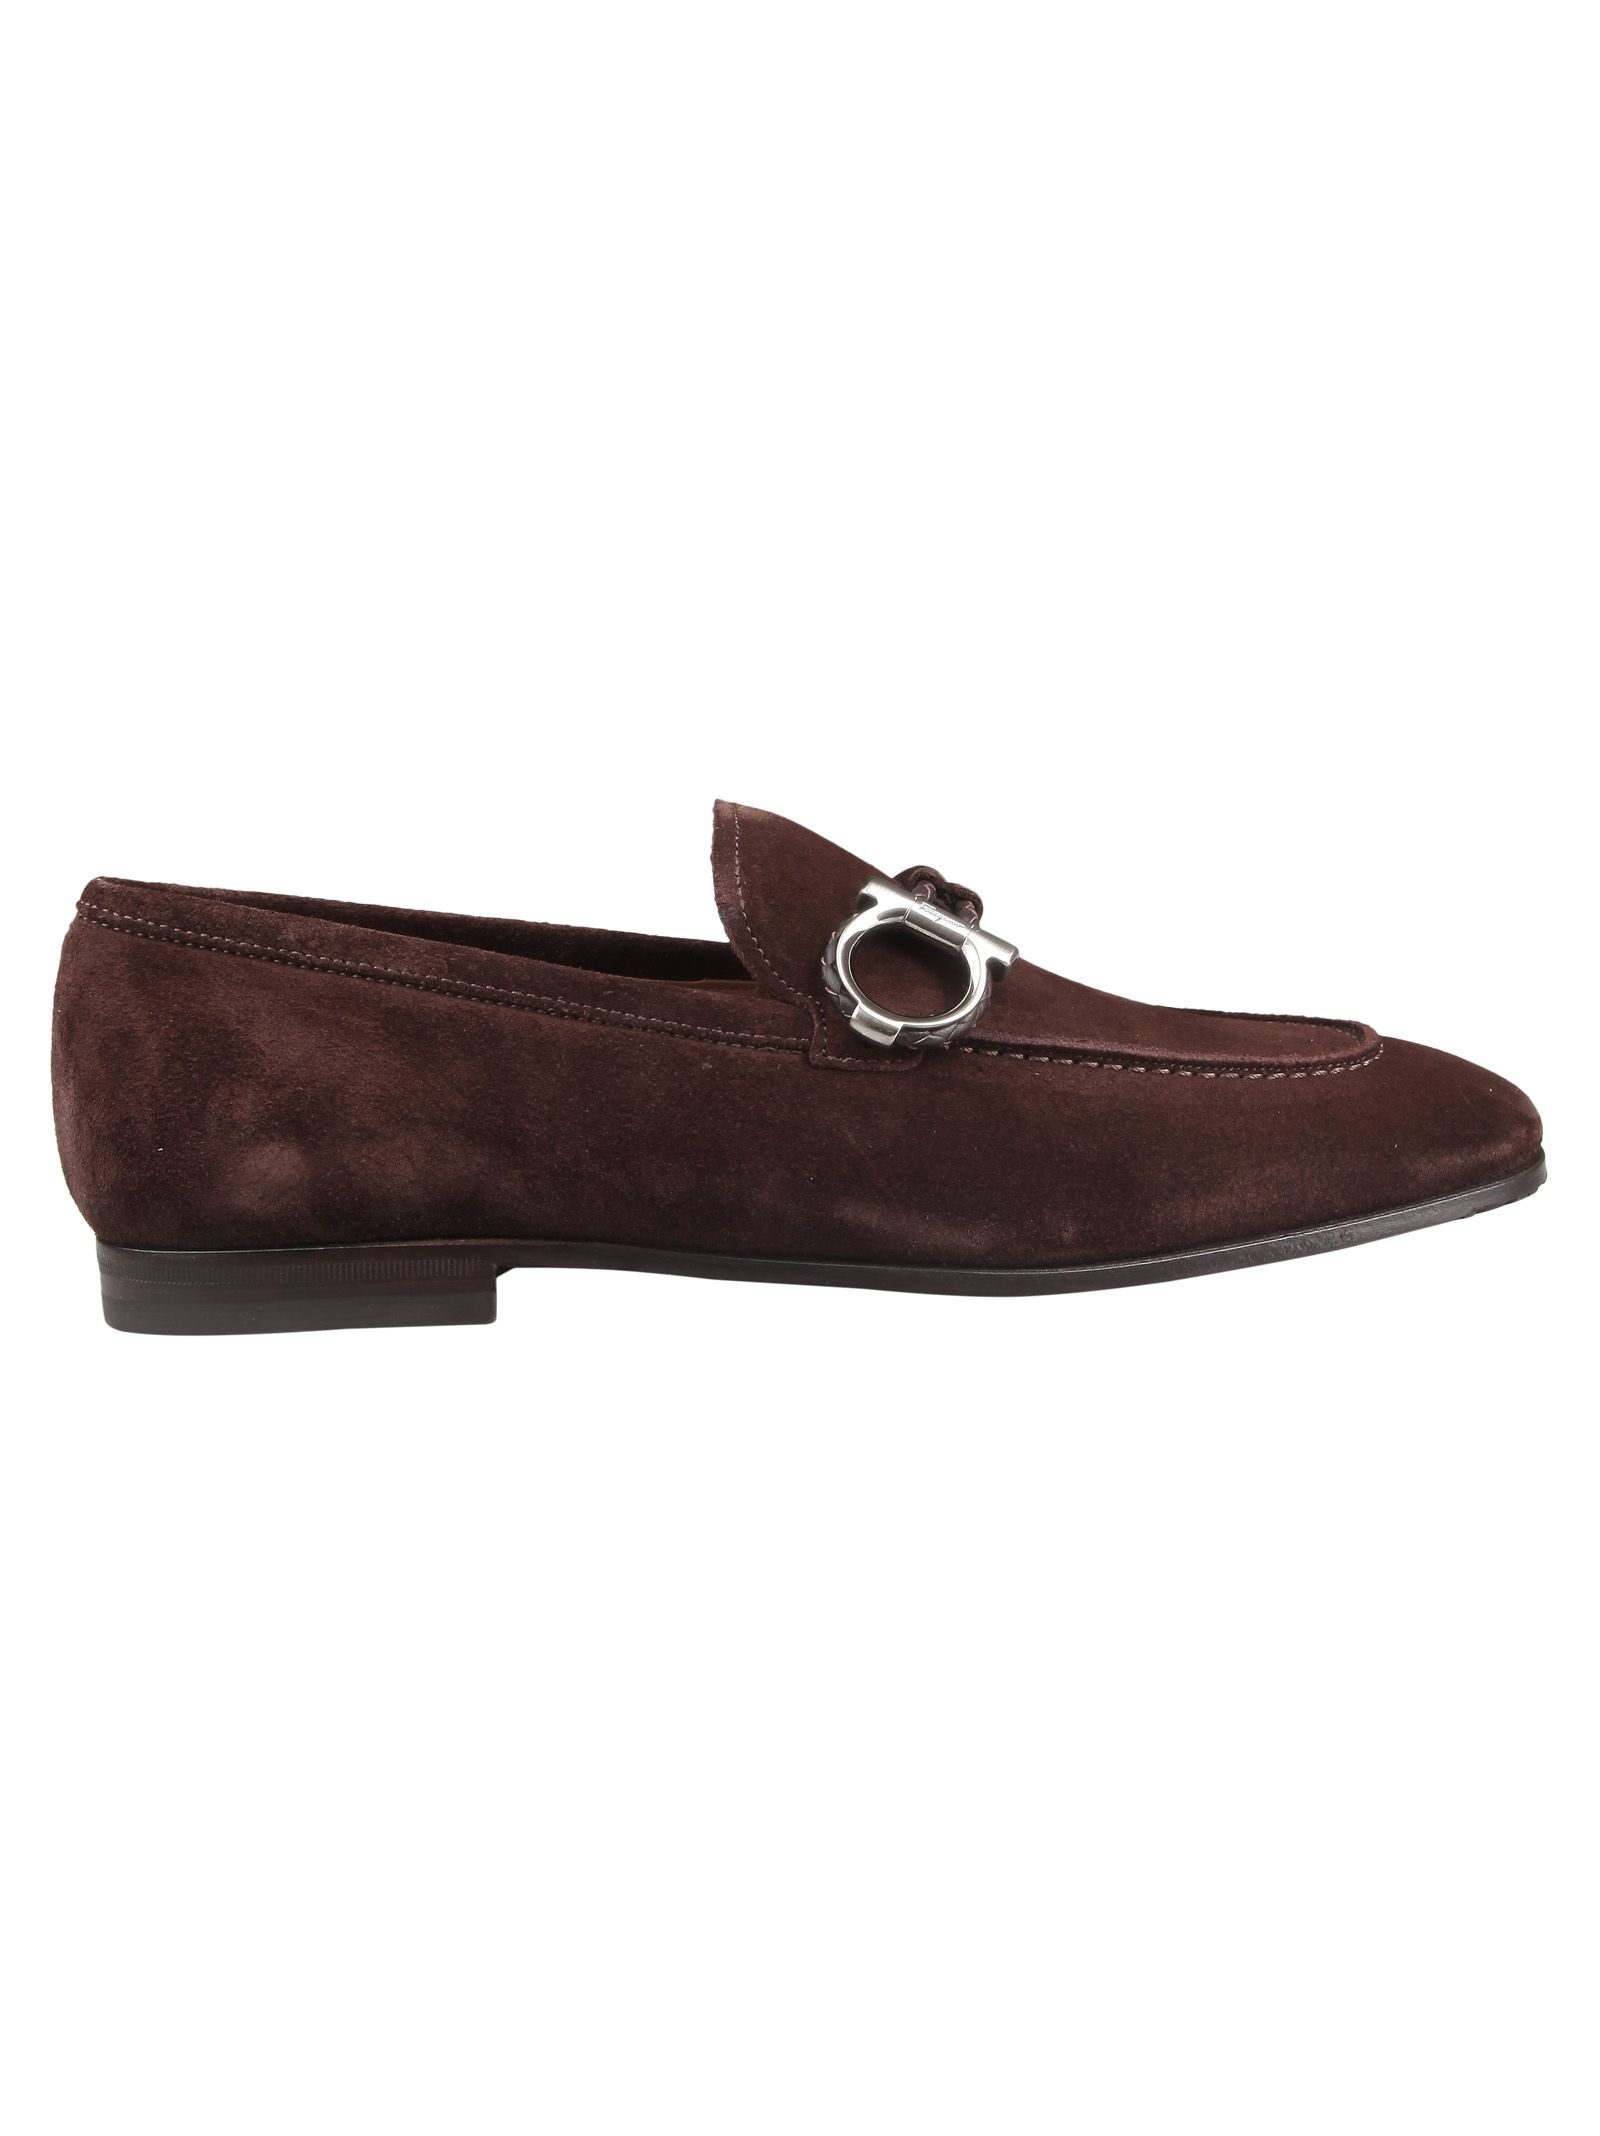 55632c686dec6 SALVATORE FERRAGAMO CLASSIC DOUBLE GANCIO LOAFERS.  salvatoreferragamo   shoes